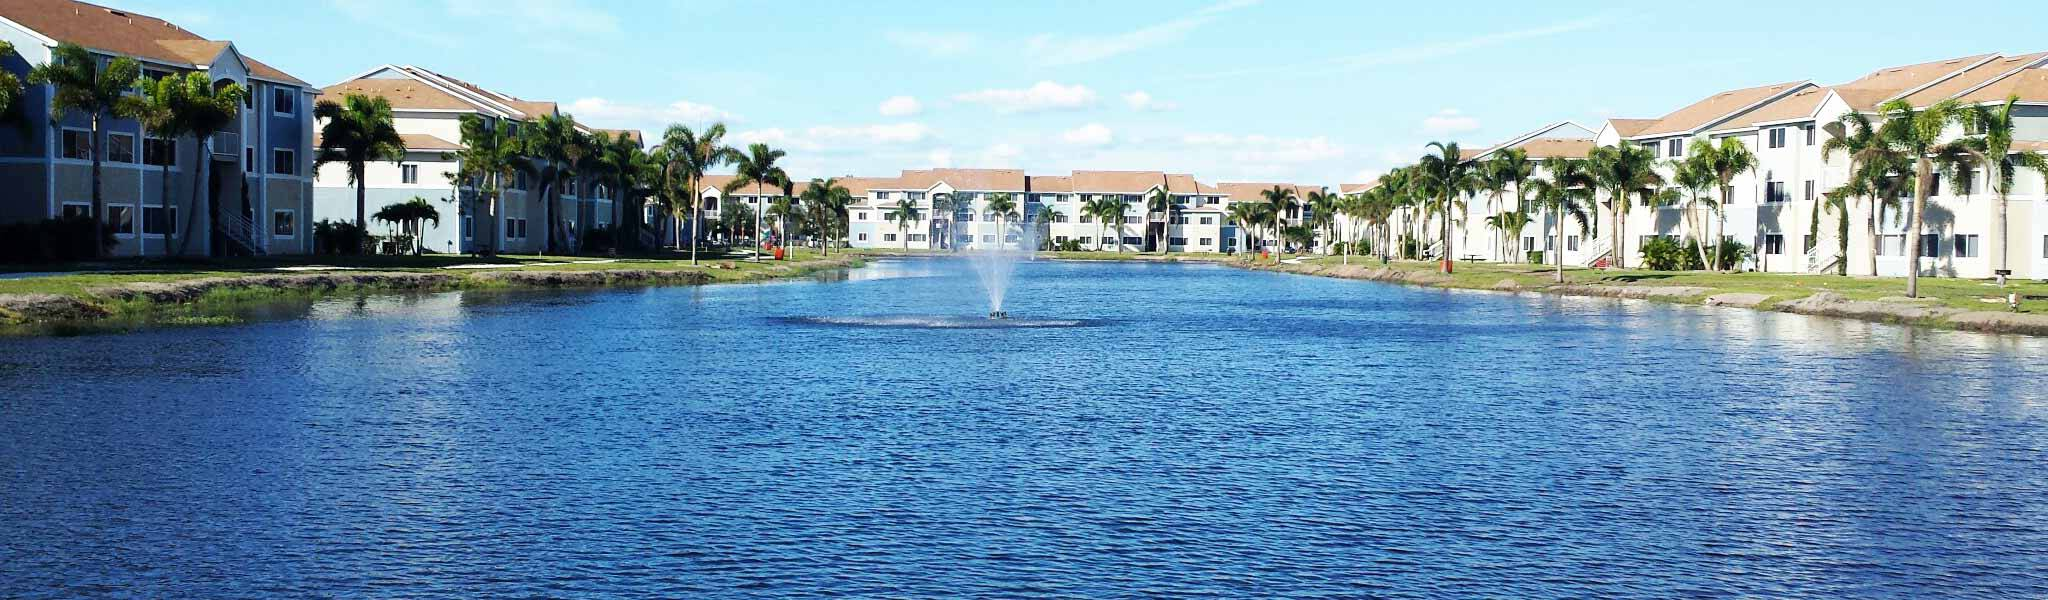 naples fl apartments for rent trend home design and decor patio world home amp hearth furniture stores fort myers